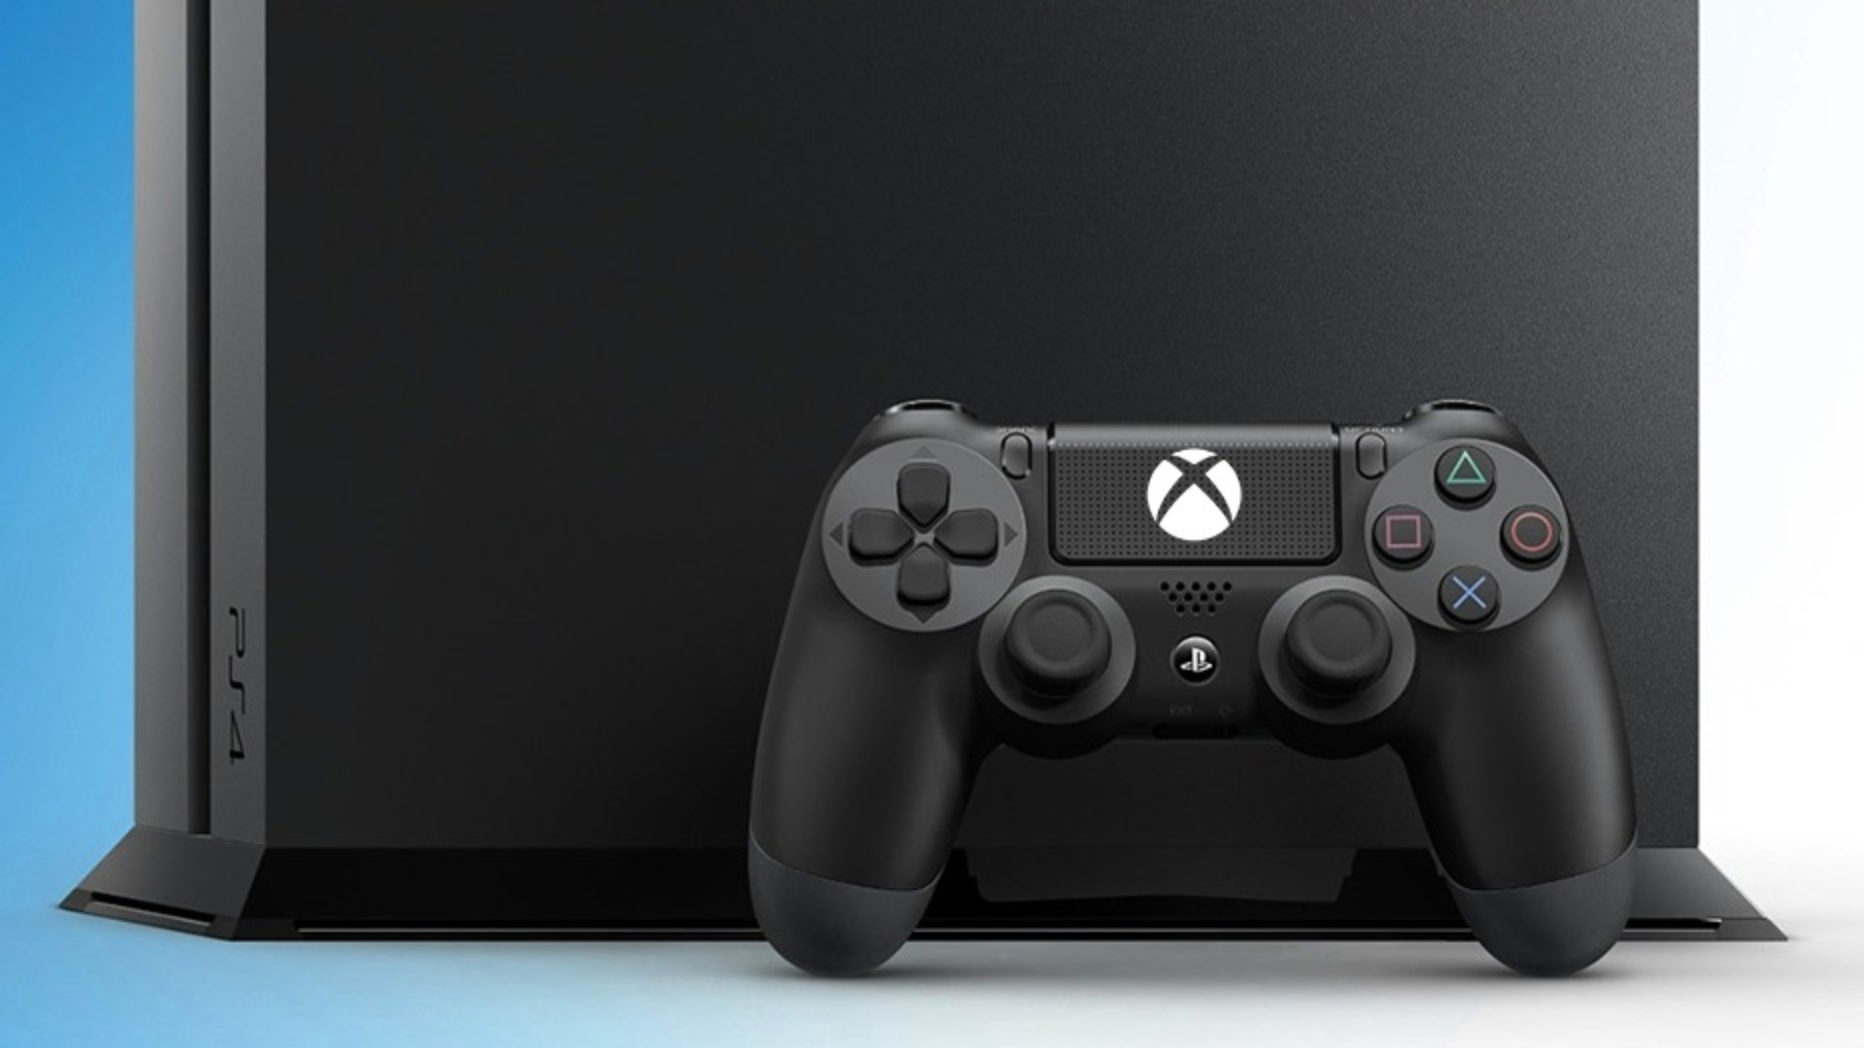 7 Features The PS4 Needs To Steal From The Xbox One